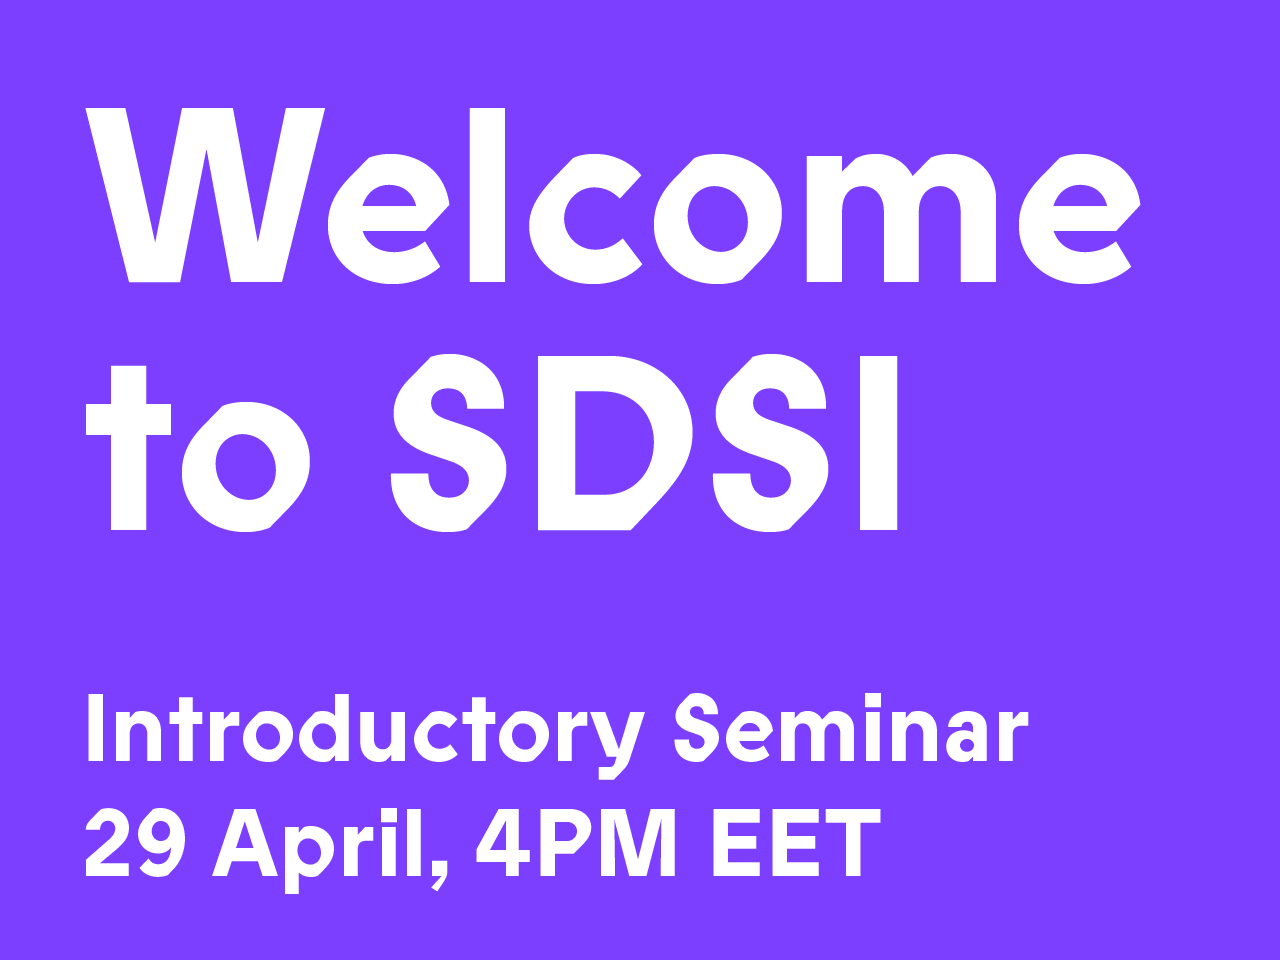 Join our first introductory seminar on April 29 at 4 p.m. EET!